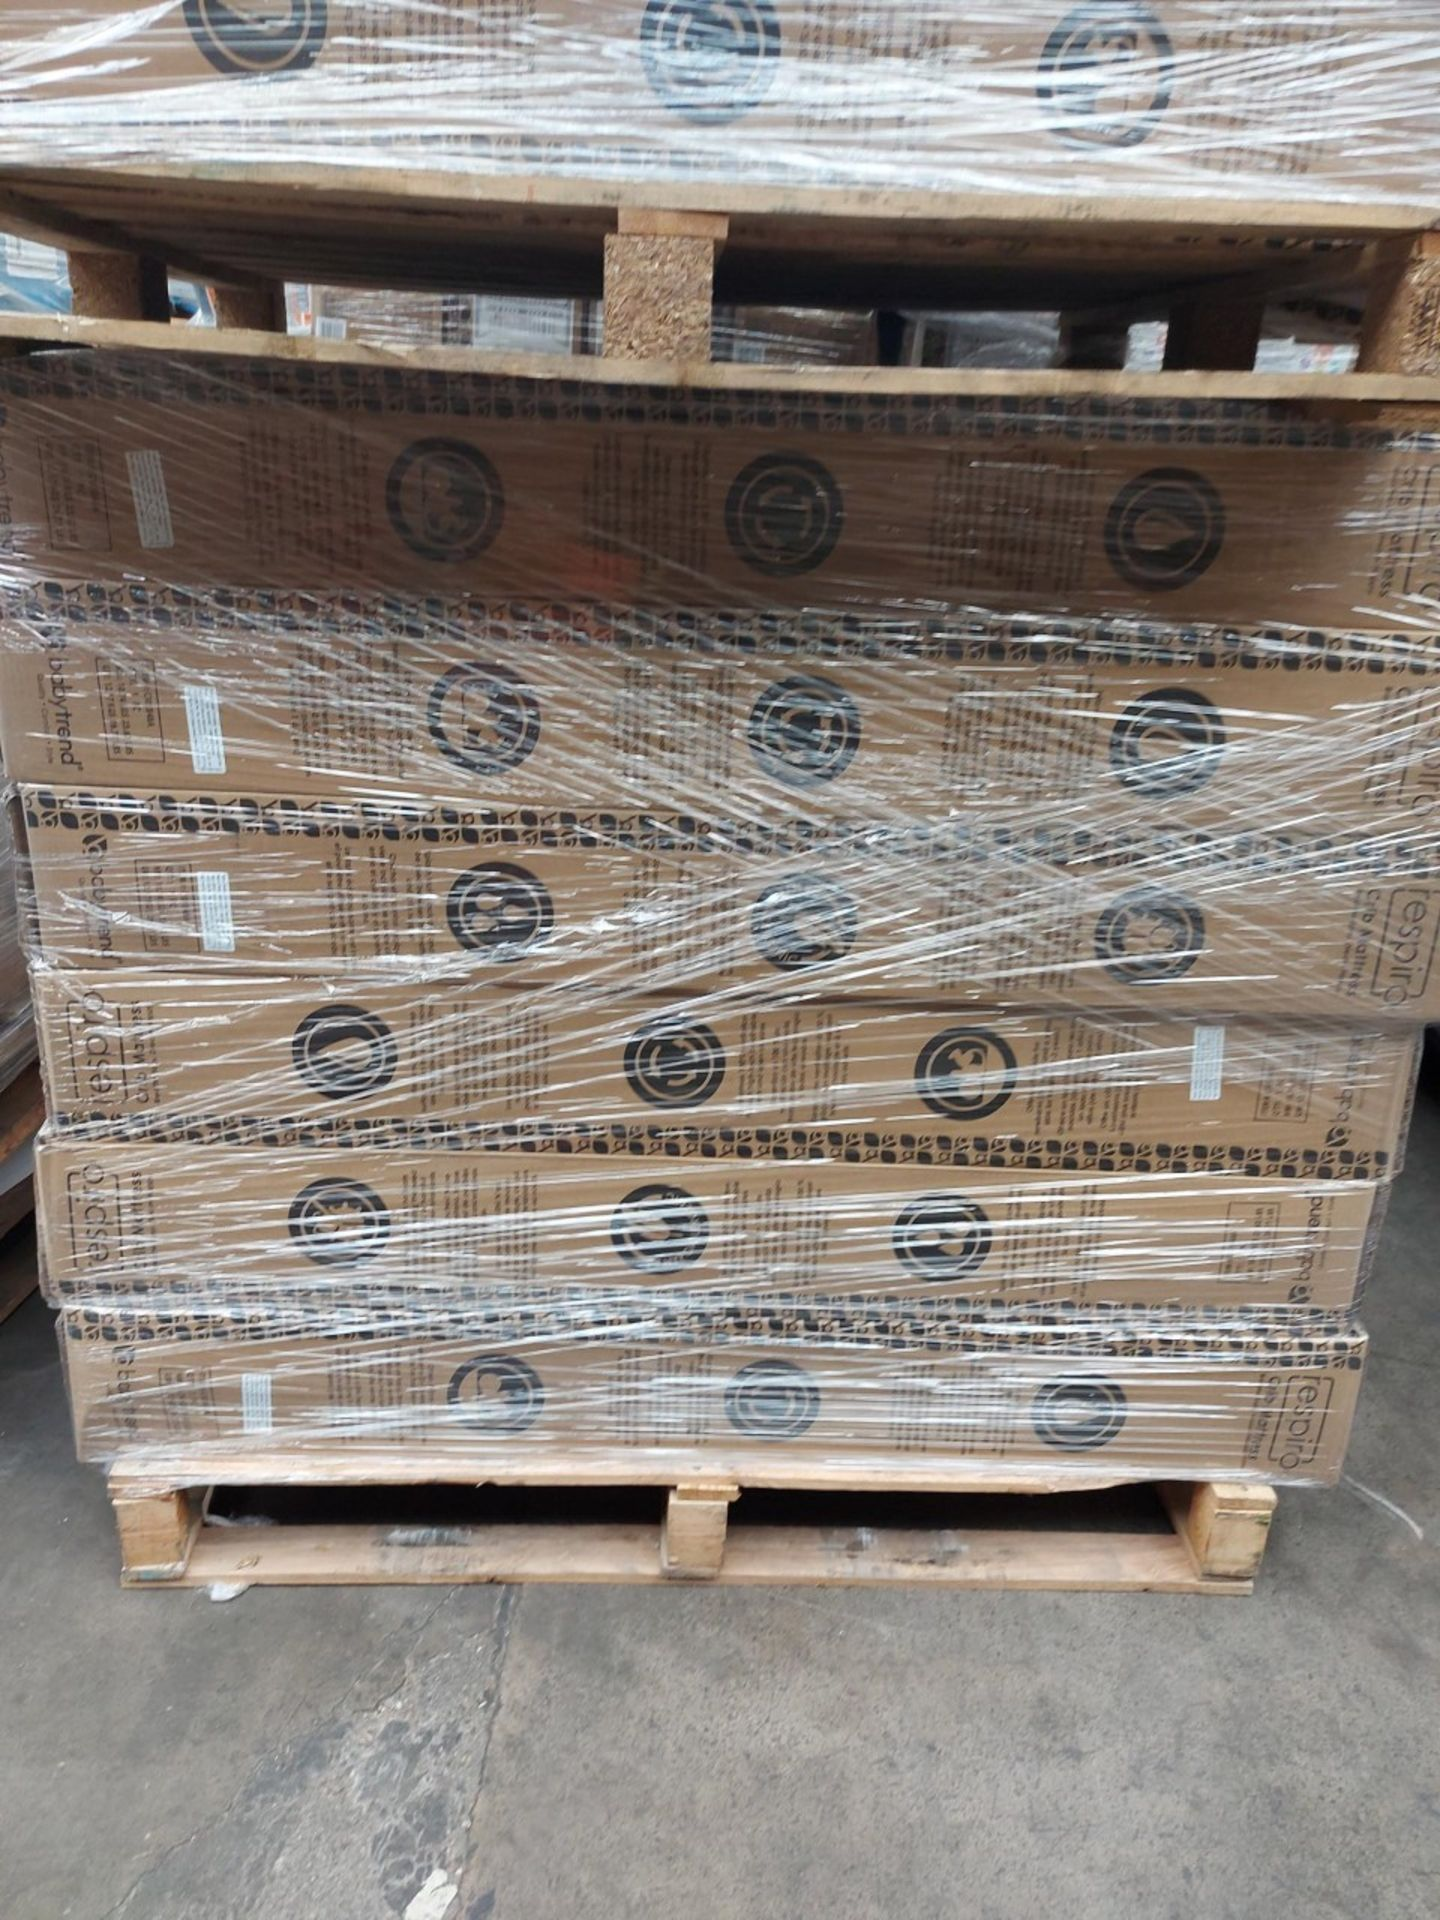 PALLET OF 20 x Brand New Boxed - Baby Trend Respiro Cot Mattress Breathable mesh and Open Air Sides. - Image 2 of 2